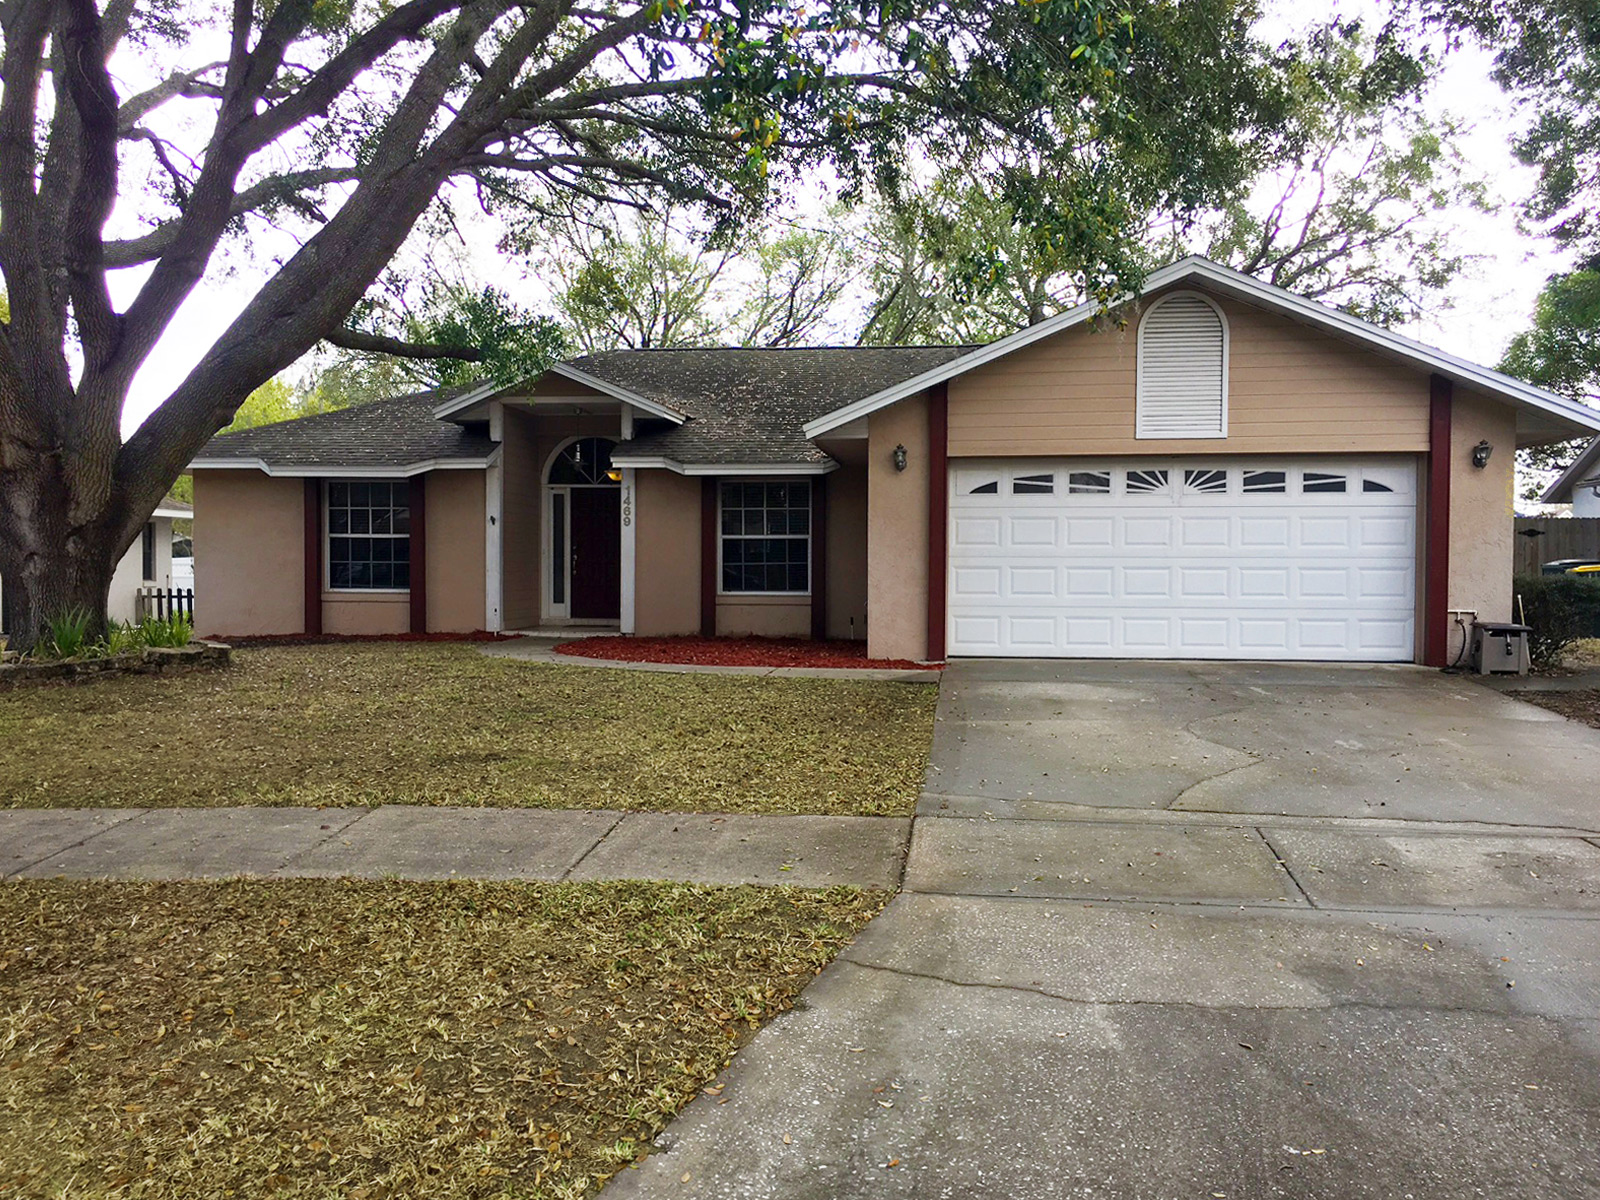 Your new home awaits, nestled in a quiet and established community just minutes away from Palatlakaha Park! This beautiful 3 bedroom, 2 bath home features a desirable split floor plan and enclosed sunroom. This is the perfect place to call home!